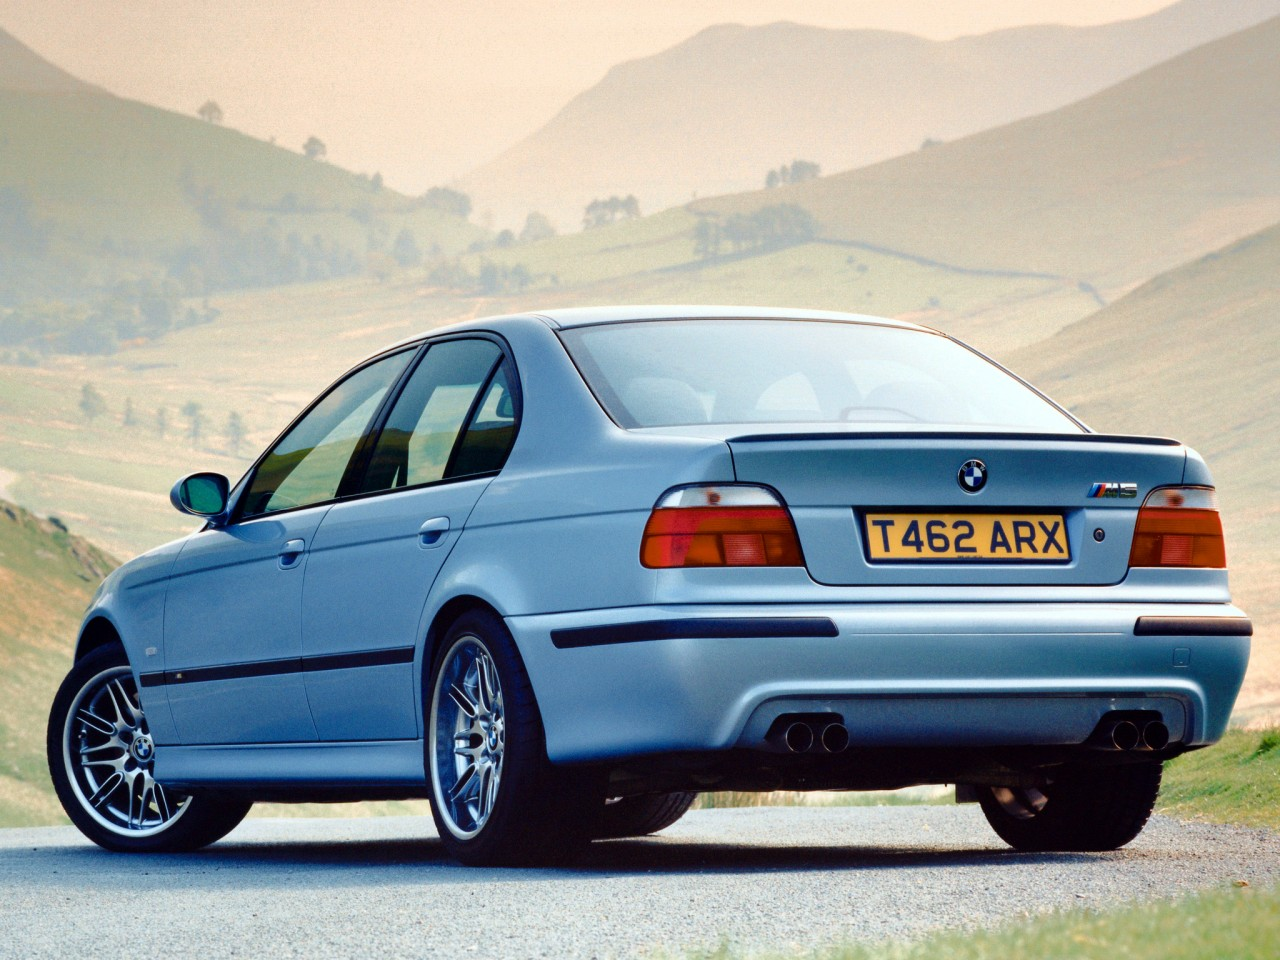 Top Three 163 8000 Classics Bmw Drive My Blogs Drive